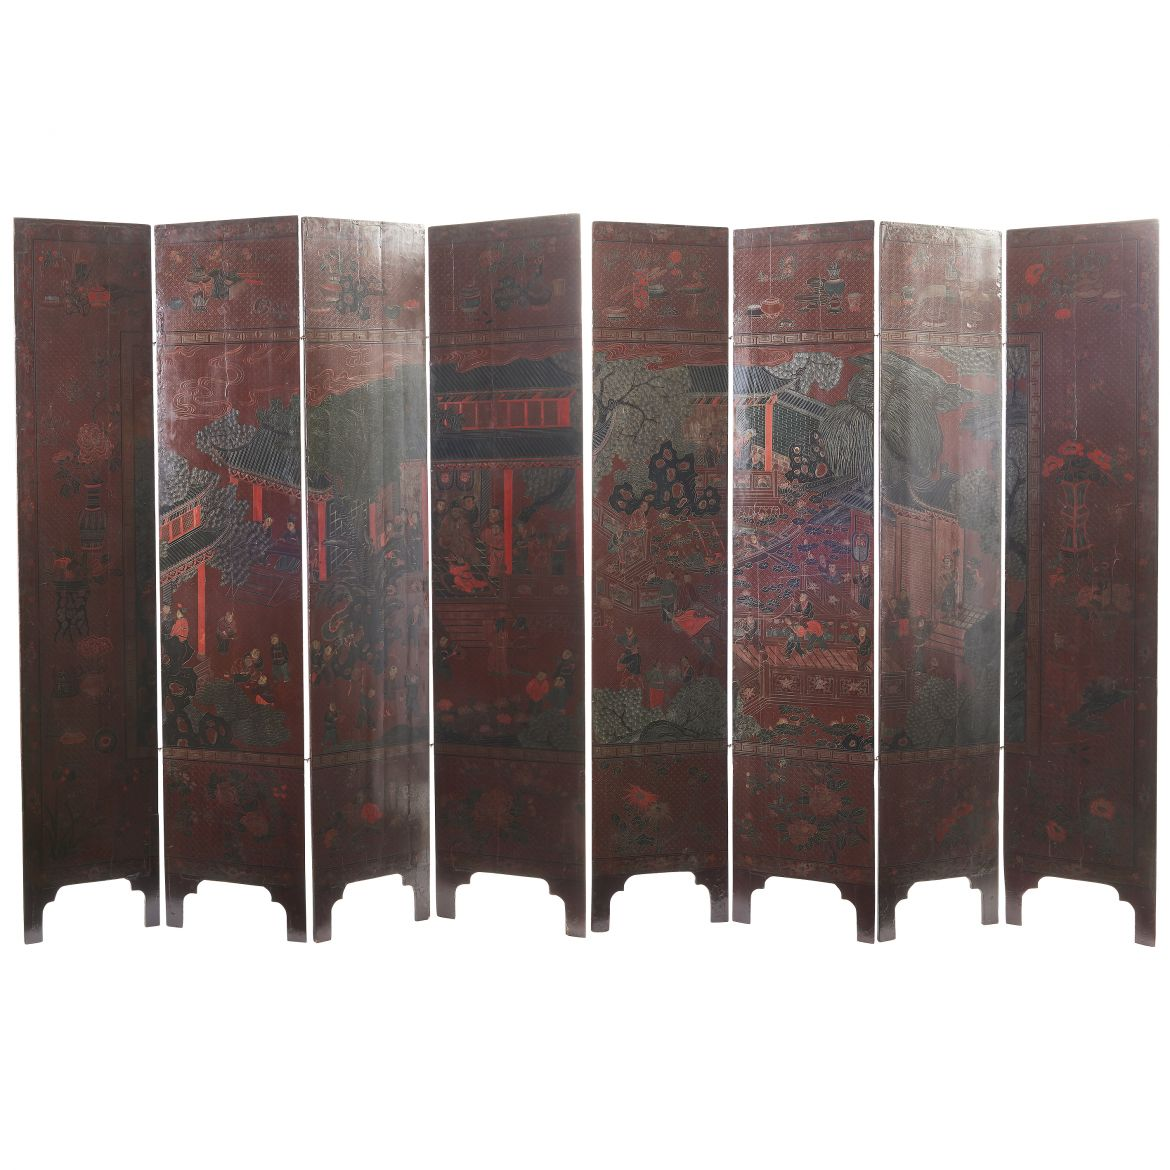 Chinese Eight Fold Coromandel Screen